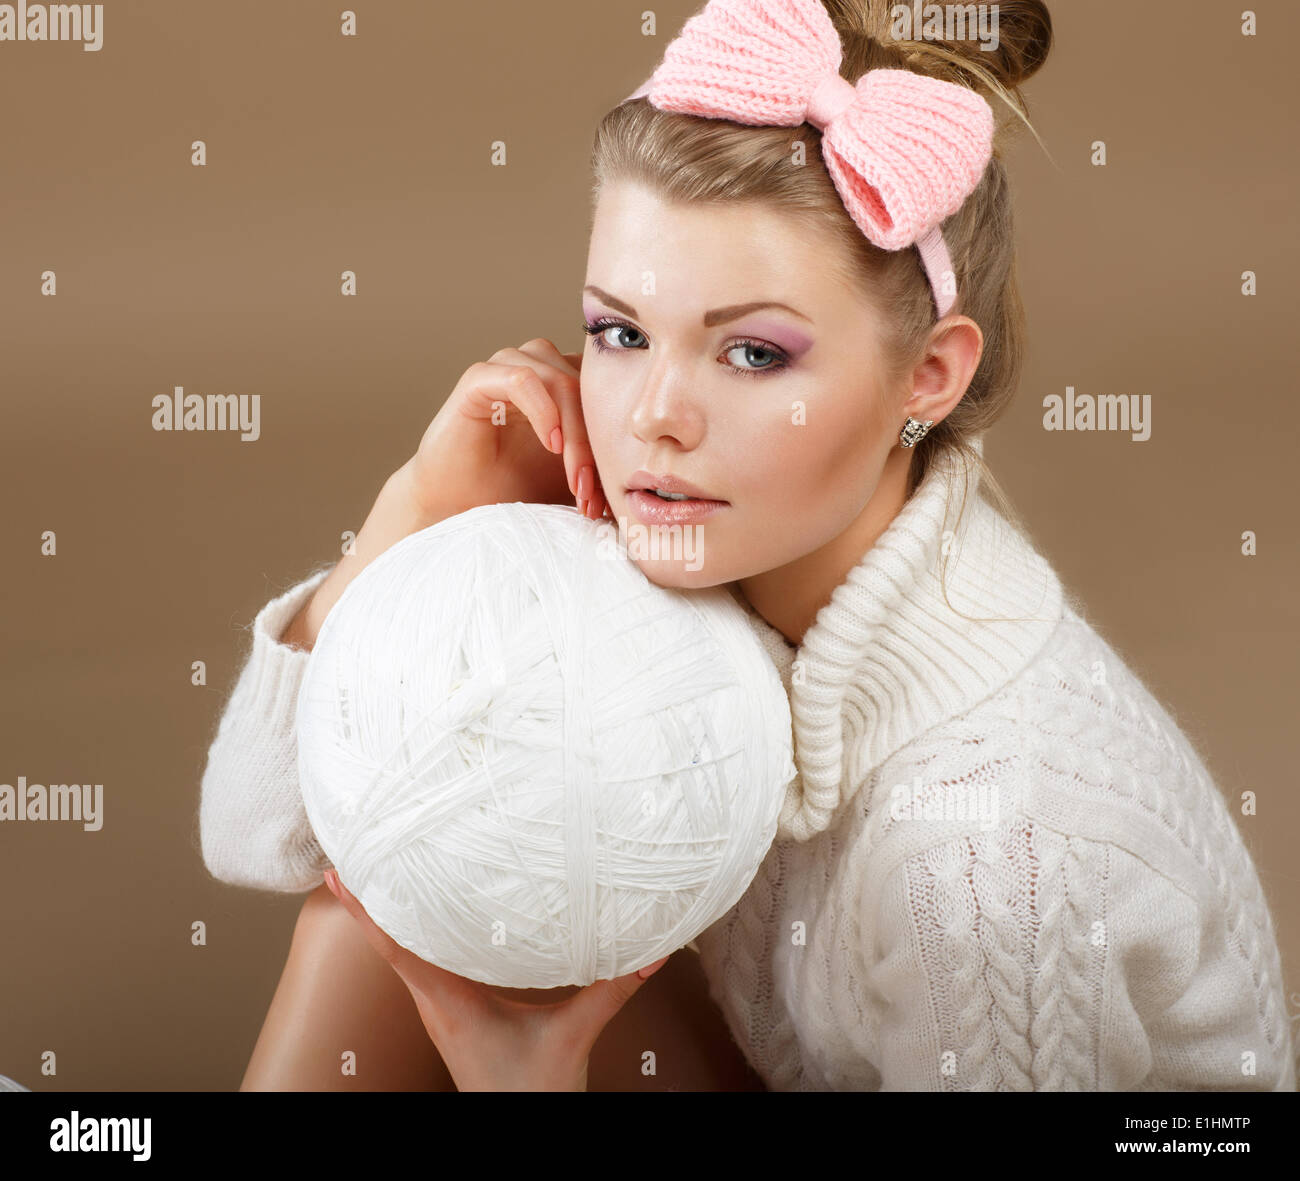 Pure Beauty. Woman in White Fluffy Knitted Pullover with Hank of Thread - Stock Image